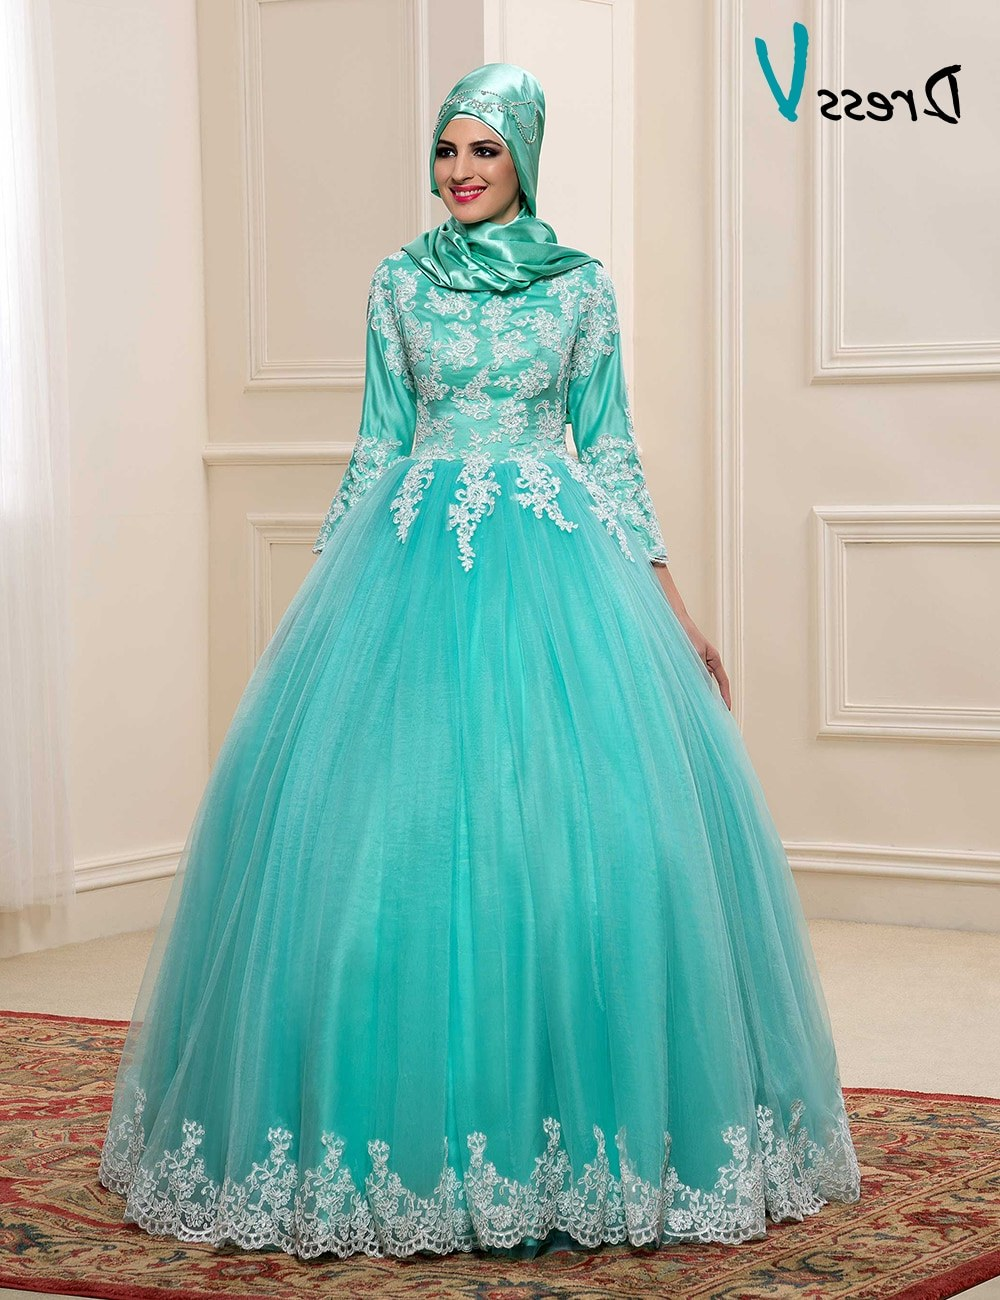 Design Baju Pengantin Muslimah 2017 Irdz islamic Hijab Wedding Dresses – Fashion Dresses